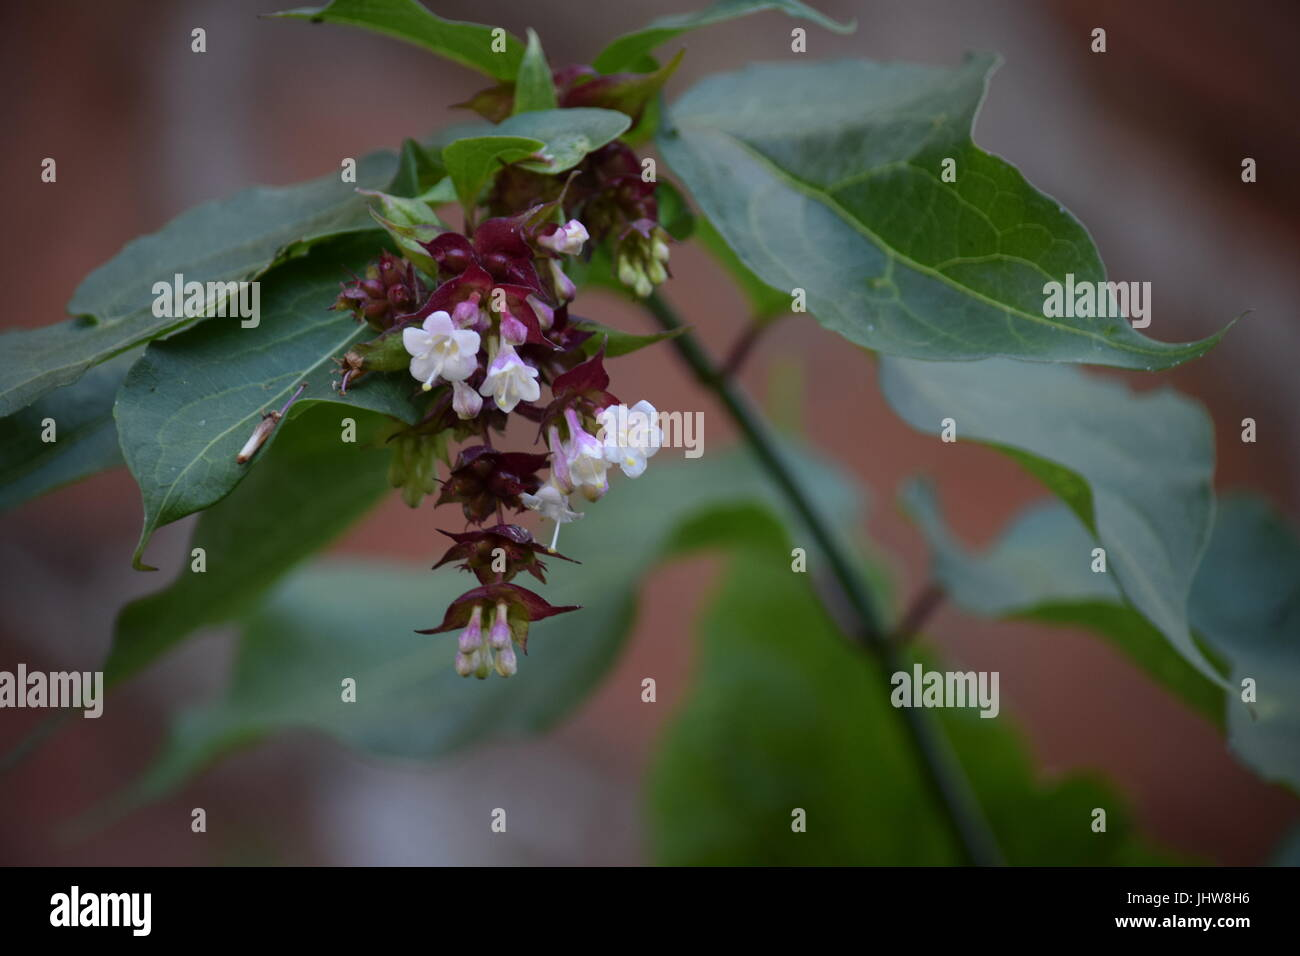 Himalayan mountain balm, flowers - Stock Image